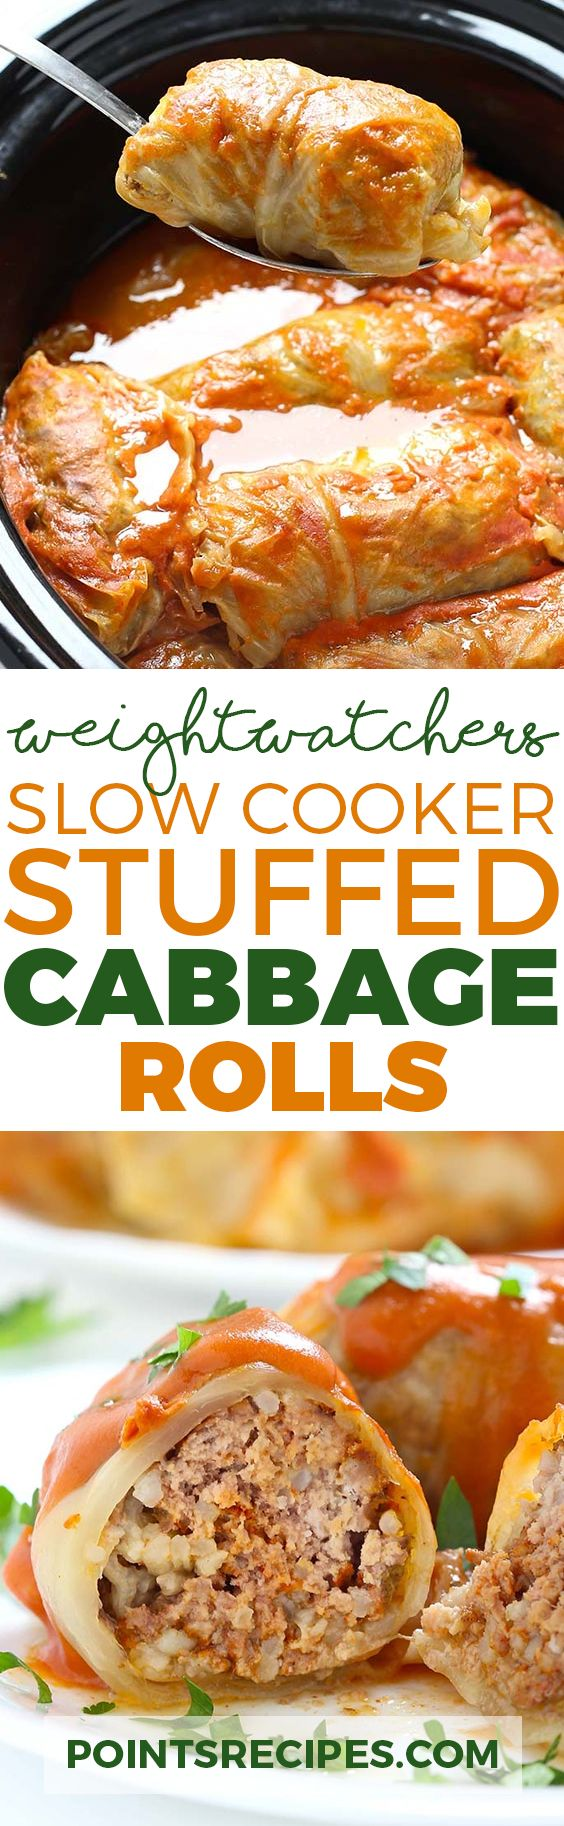 Slow Cooker Stuffed Cabbage Rolls (Weight Watchers SmartPoints)